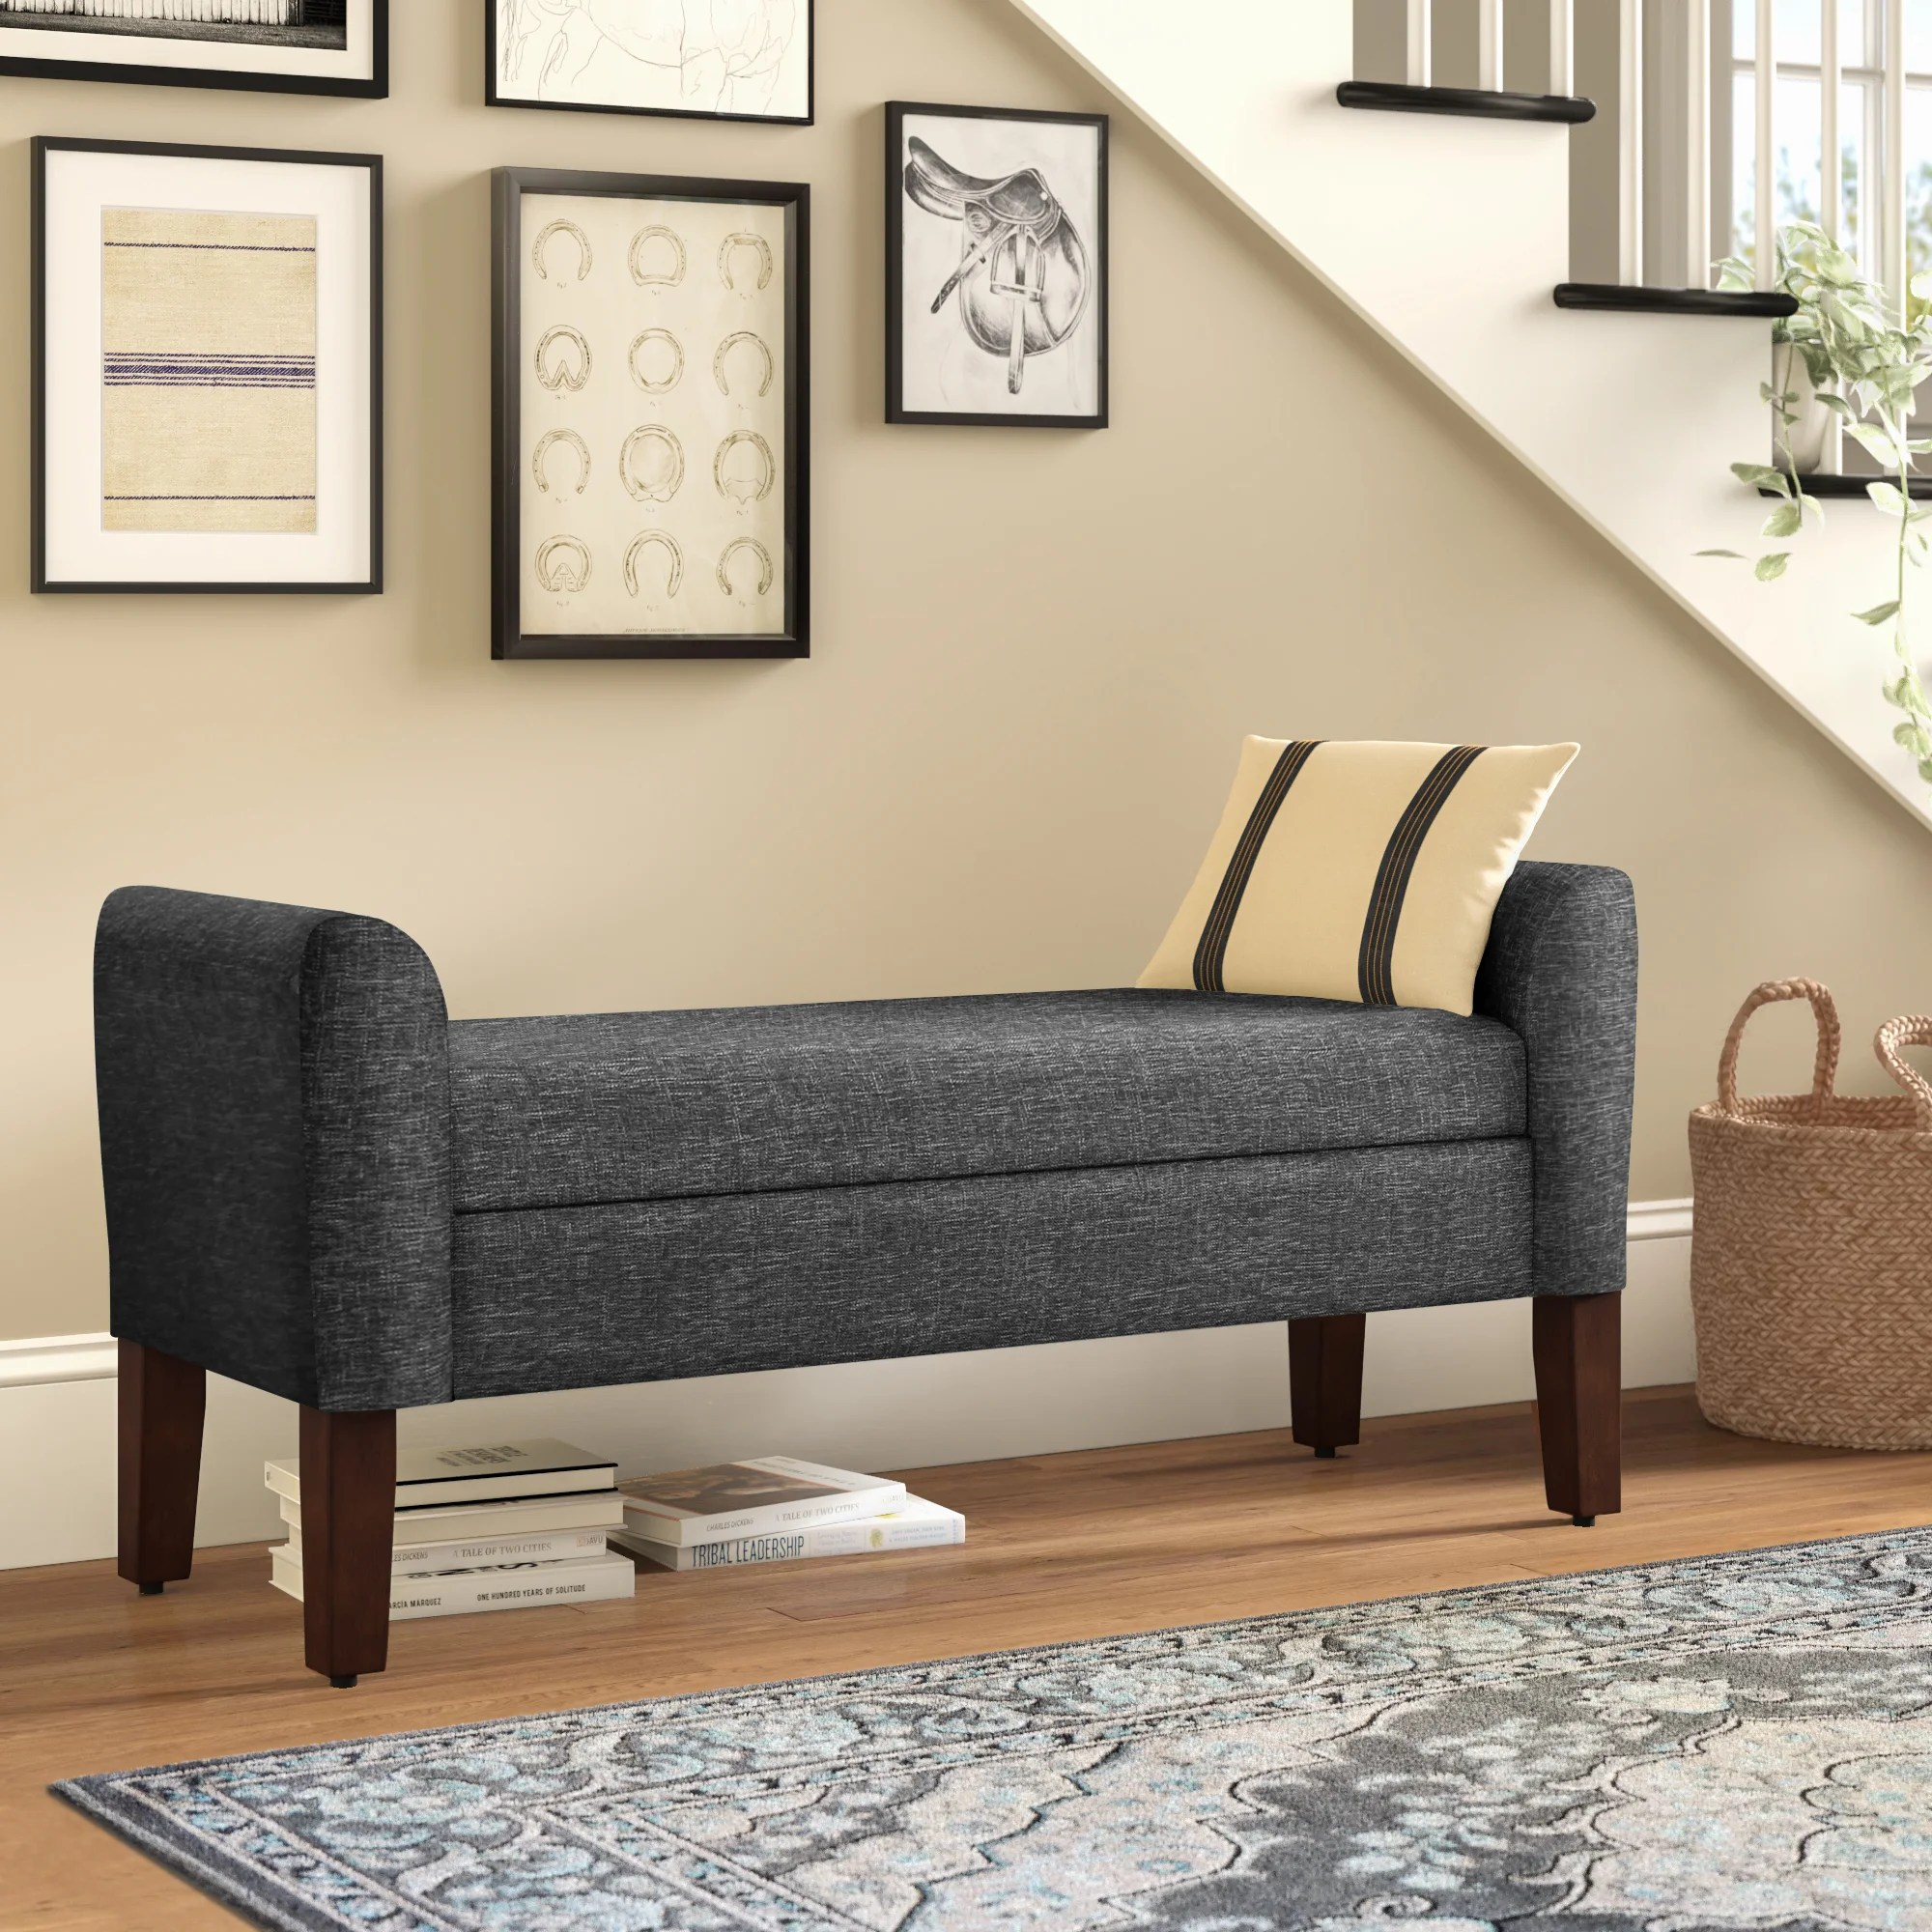 with arms benches free shipping over